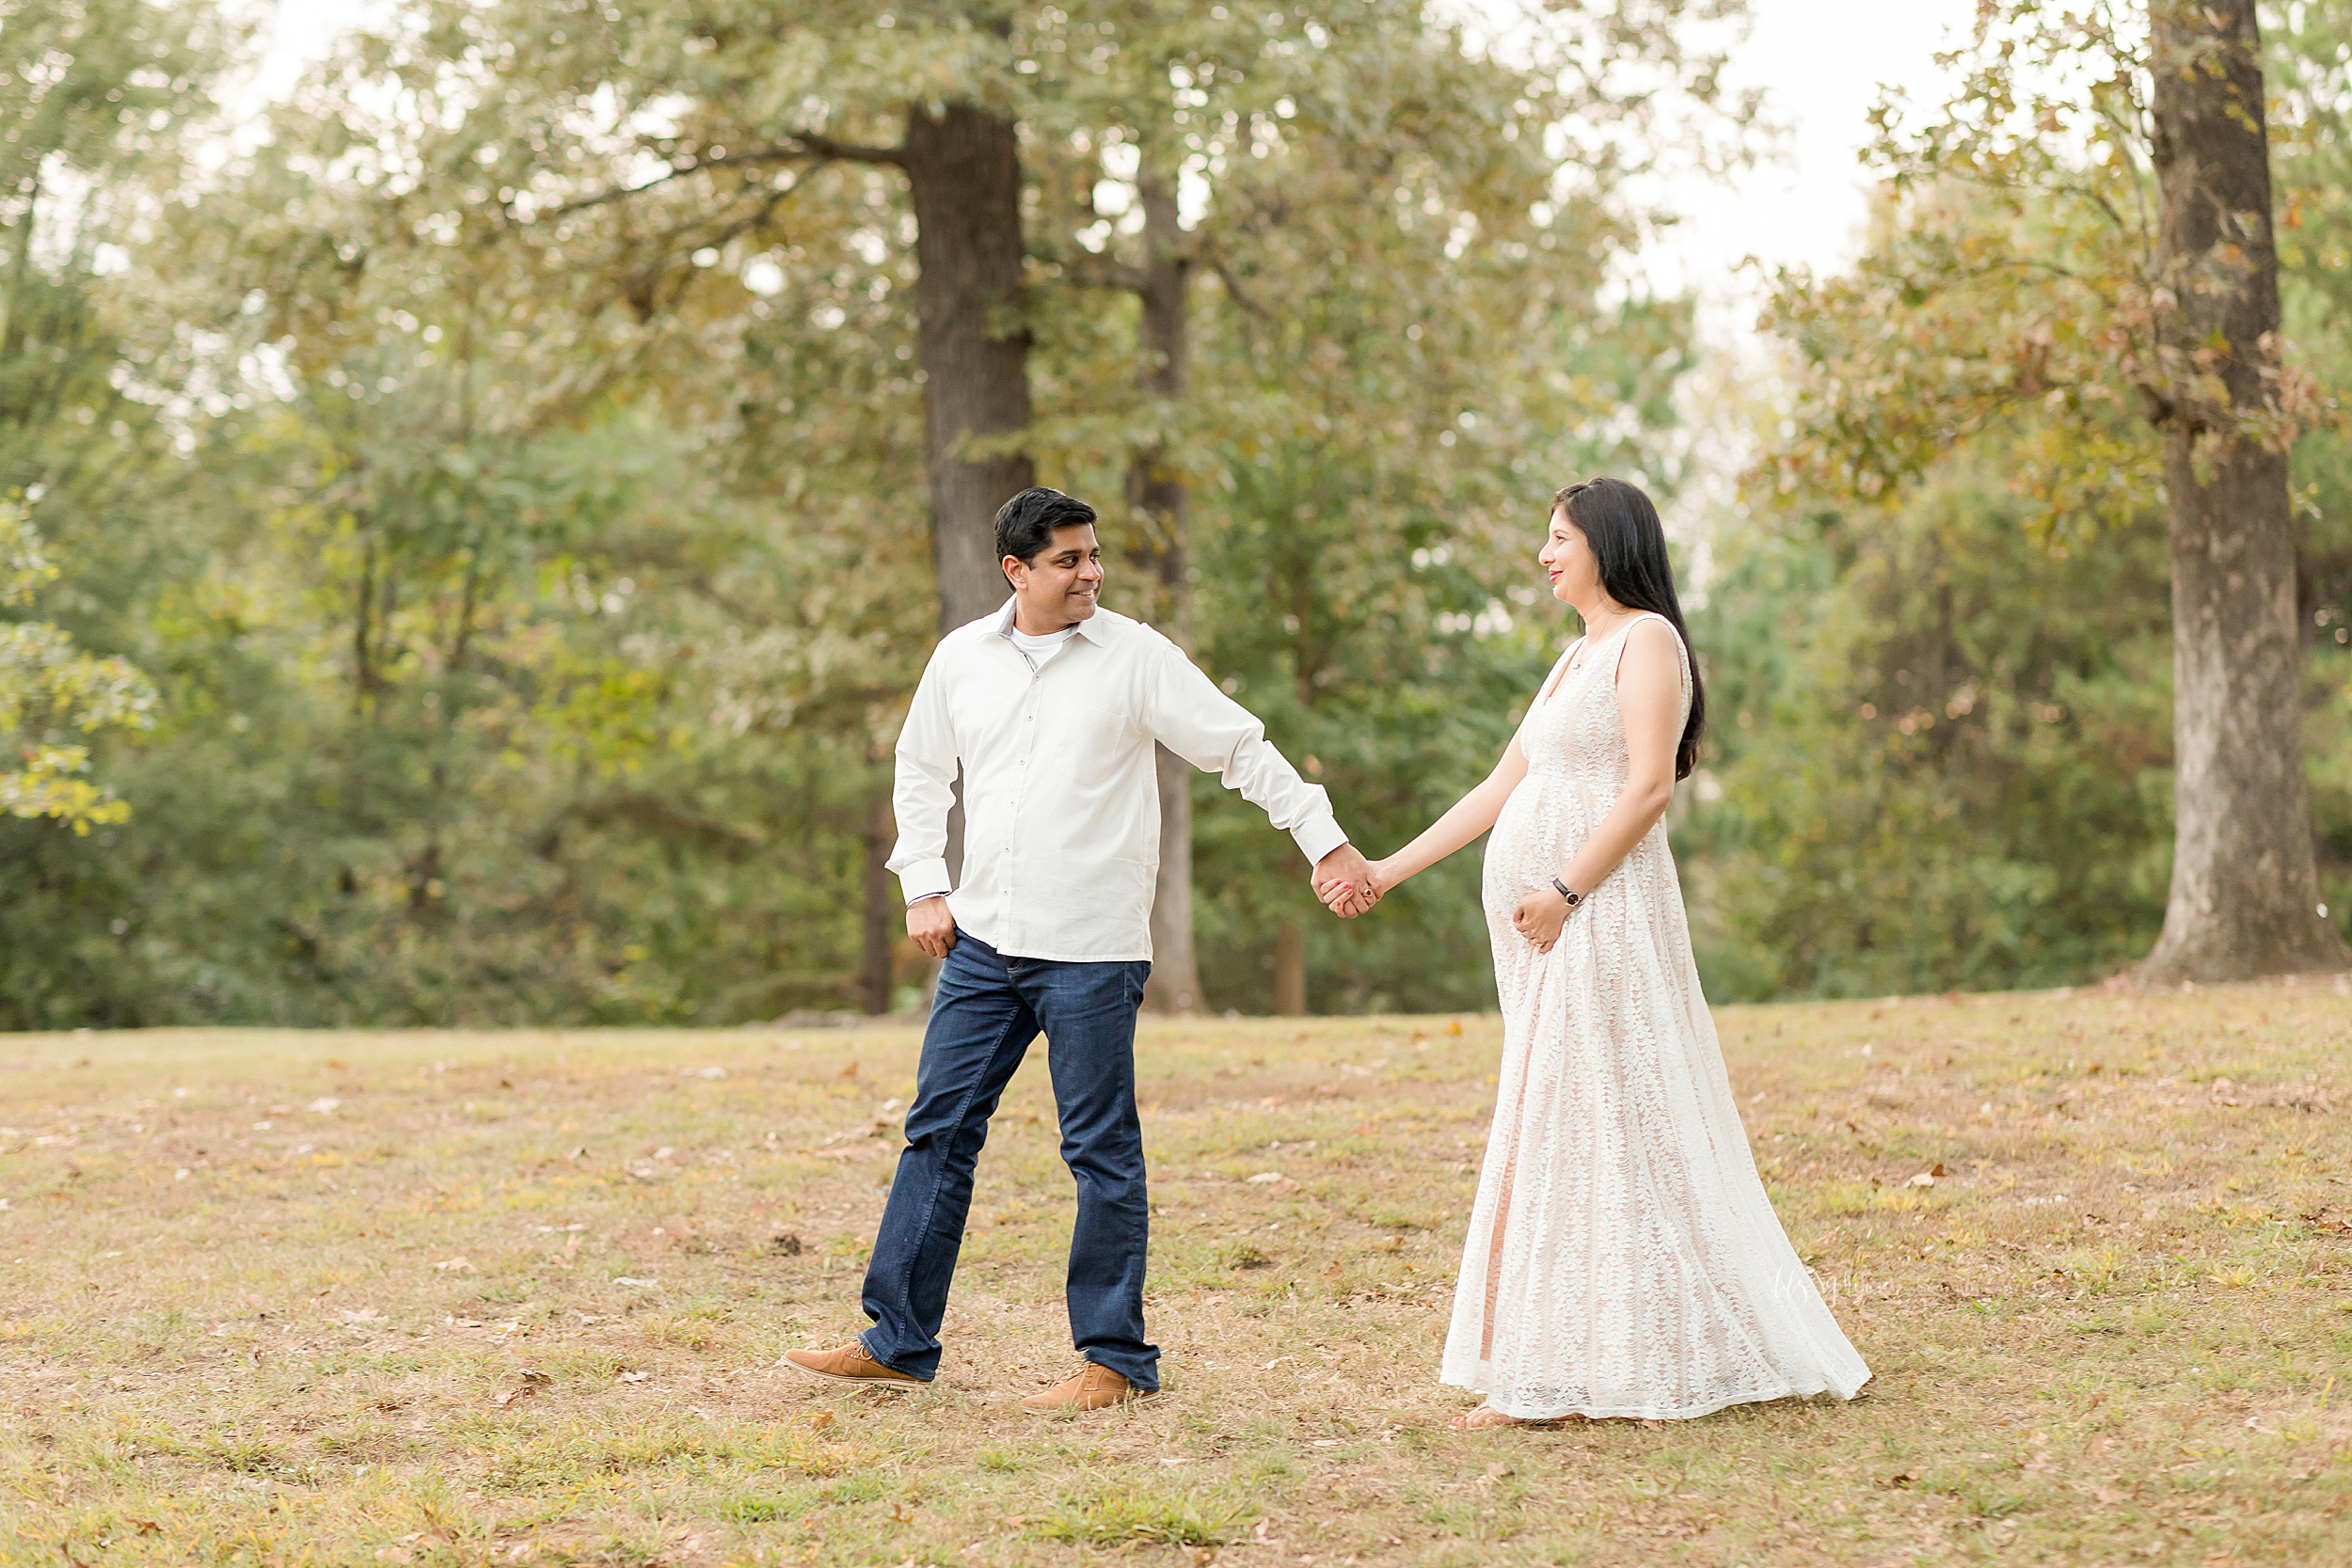 atlanta-midtown-lawrenceville-decatur-lily-sophia-photography-photographer-indian-couple-maternity-photos-expecting-baby-girl_0187.jpg